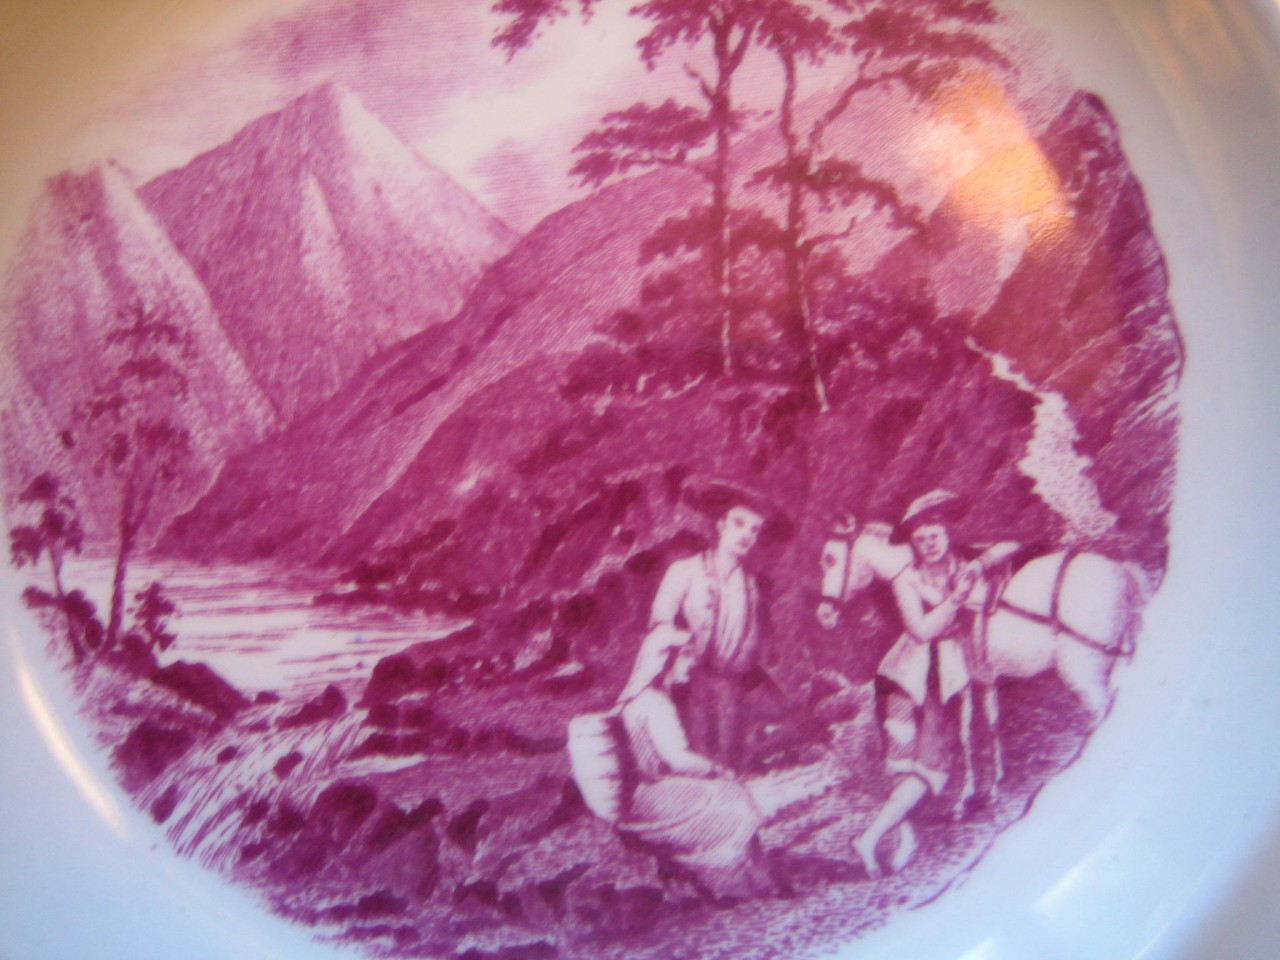 Fuschia Deep Pink Mountain Stream Horse 1920s Plate S Center www.DecorativeDishes.net